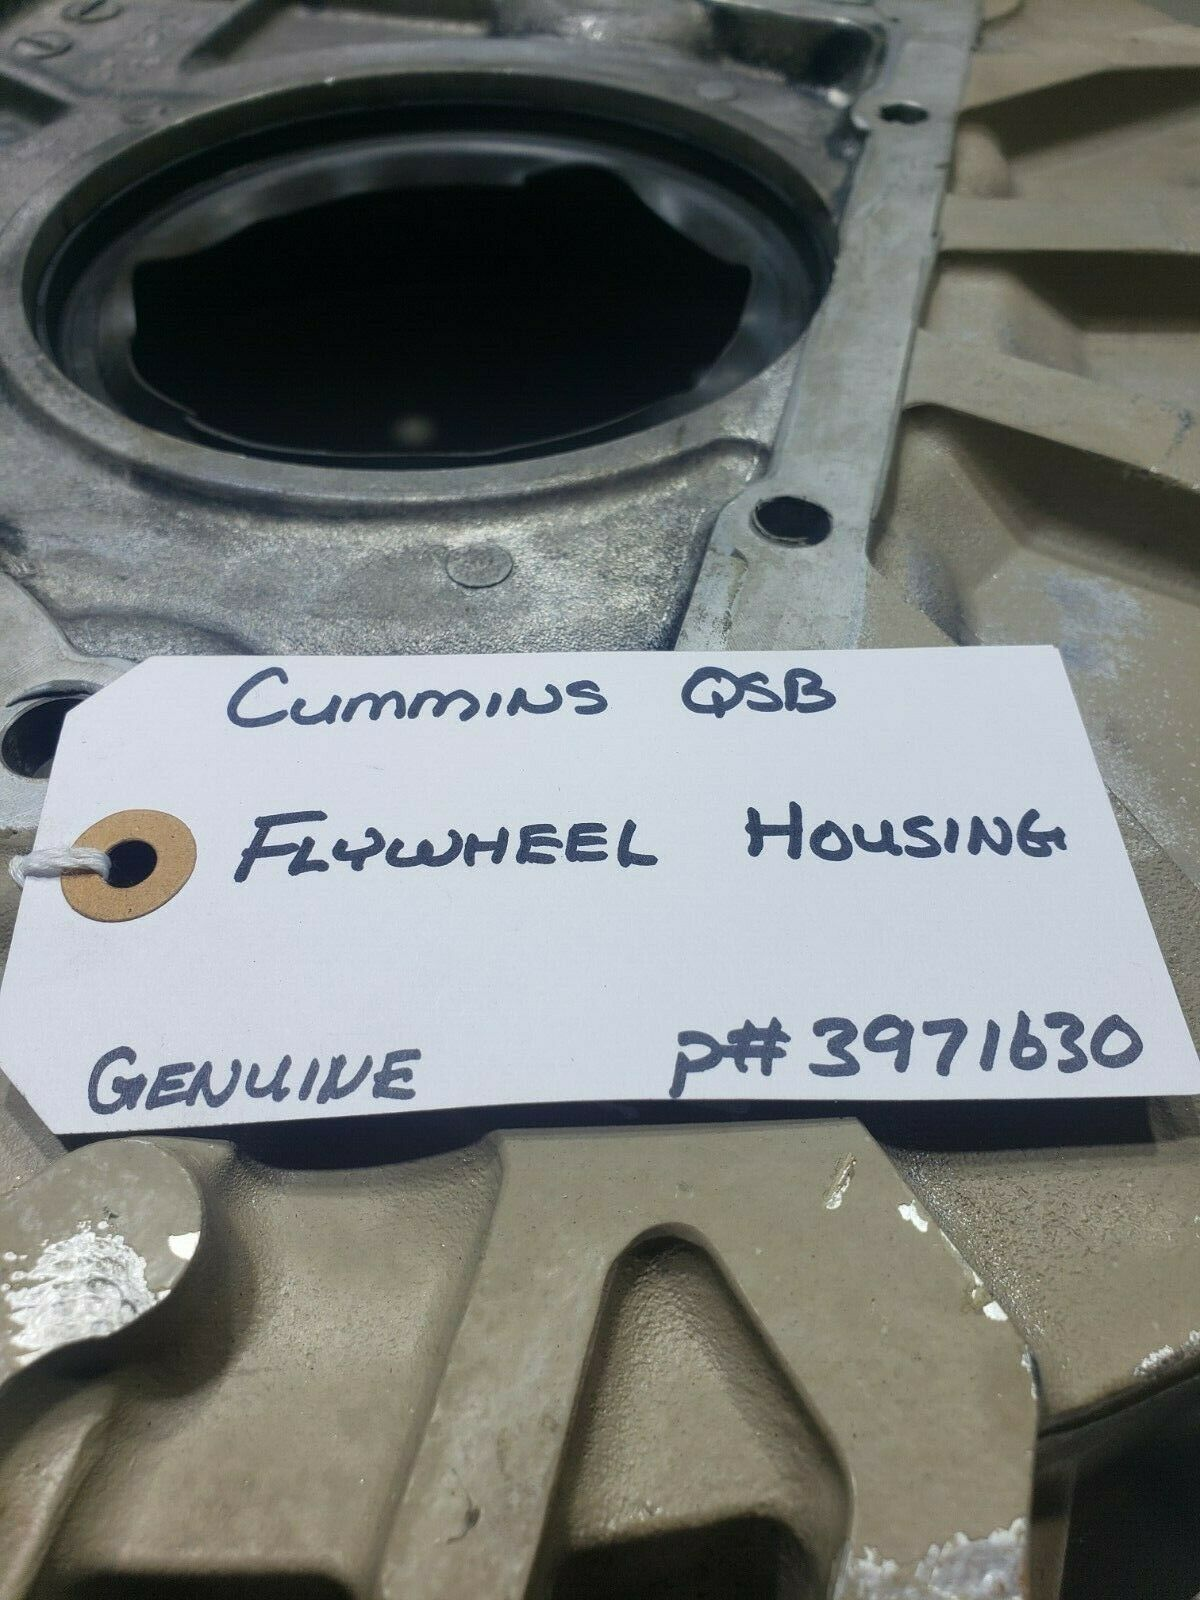 Fly Wheel Housing Cummins QSB 3971630 OEM image 7